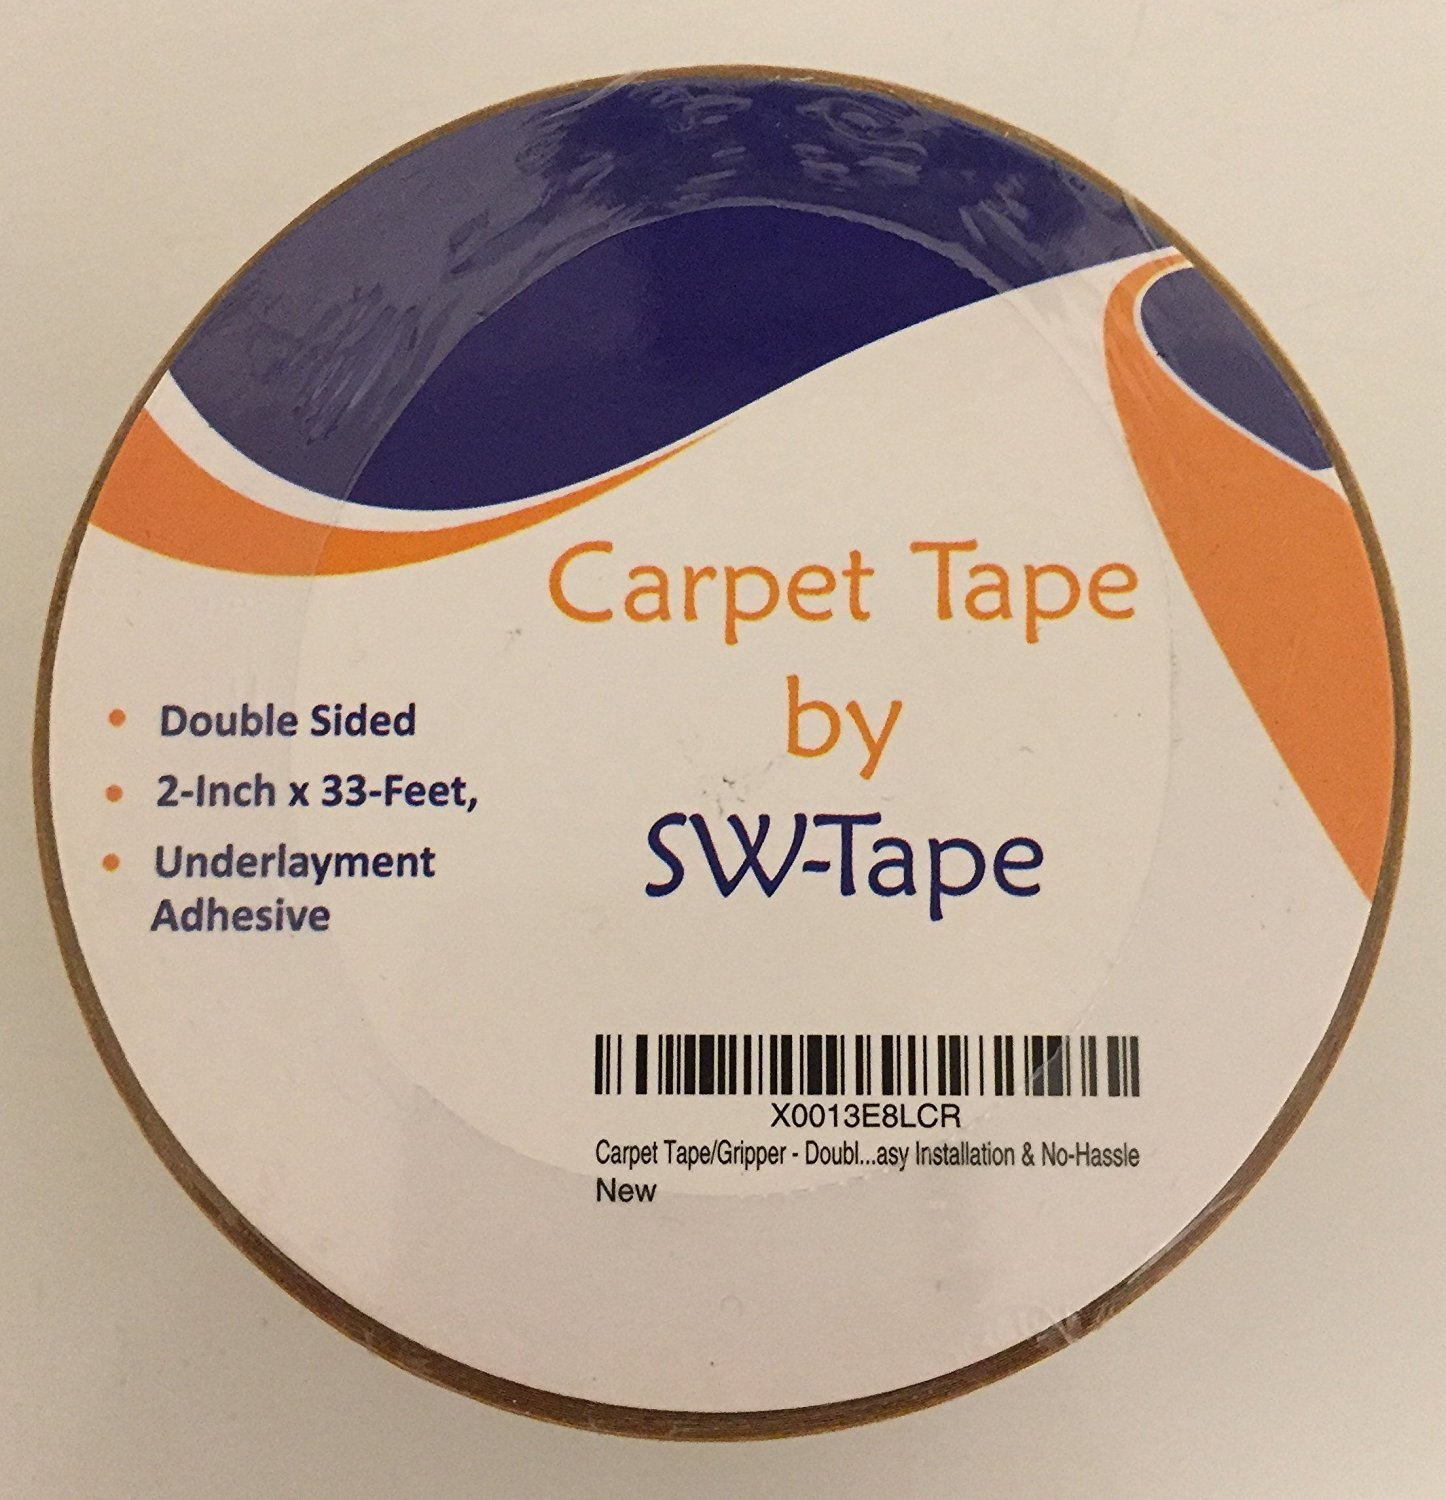 Carpet Tape - Double Sided 2-Inch x 33-Feet